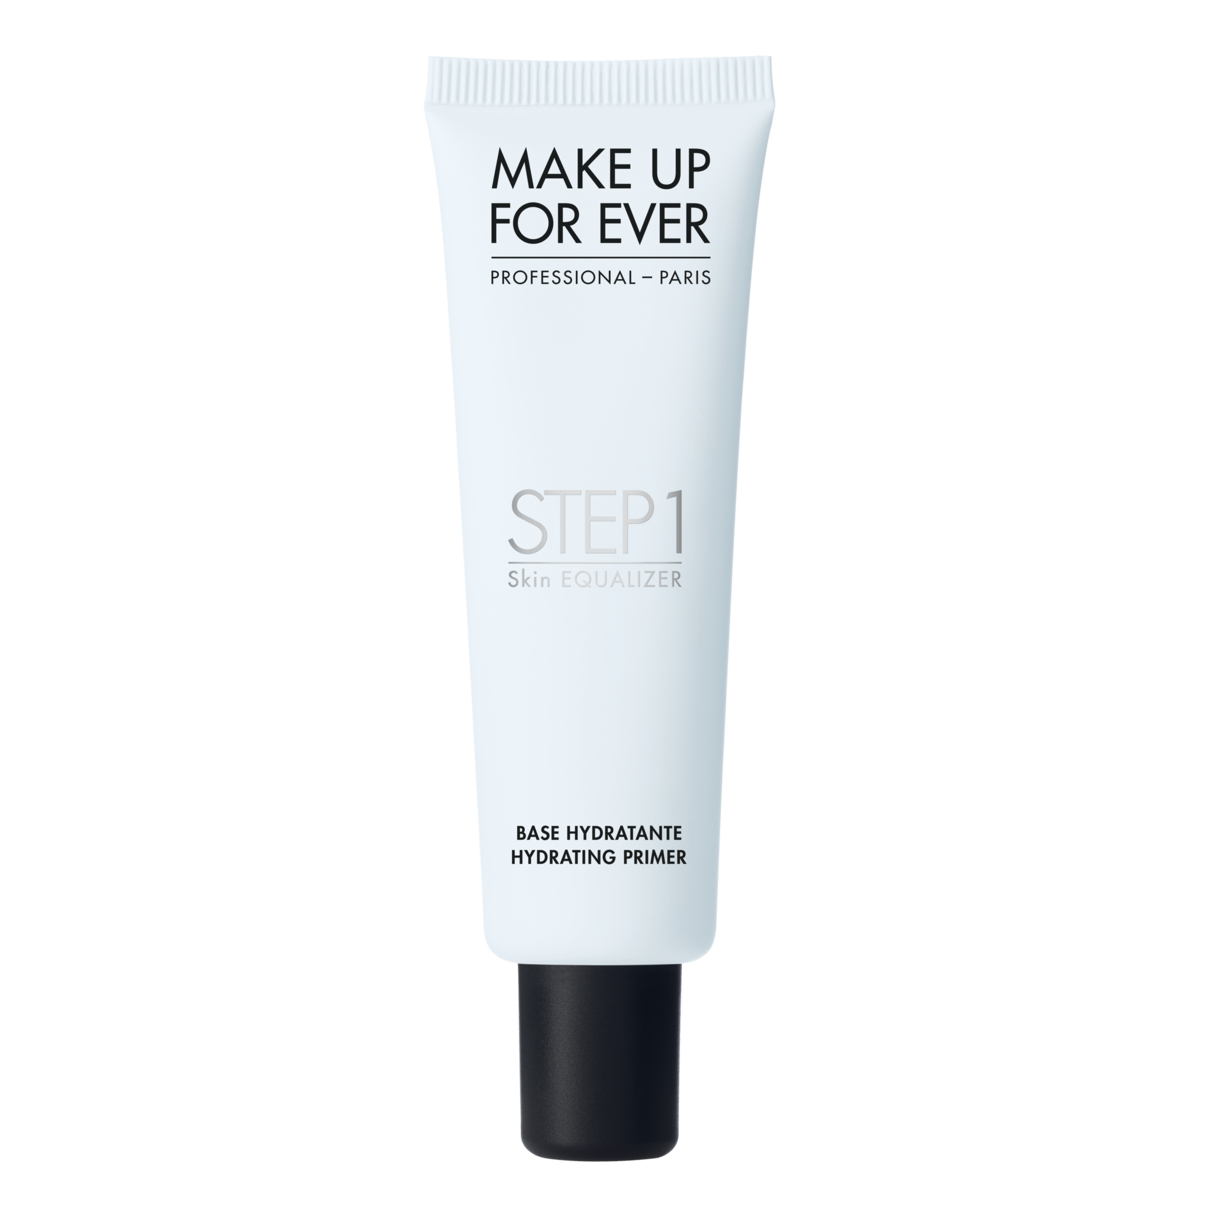 Pin by Brigid Chace on Makeup Hydrating primer, Makeup